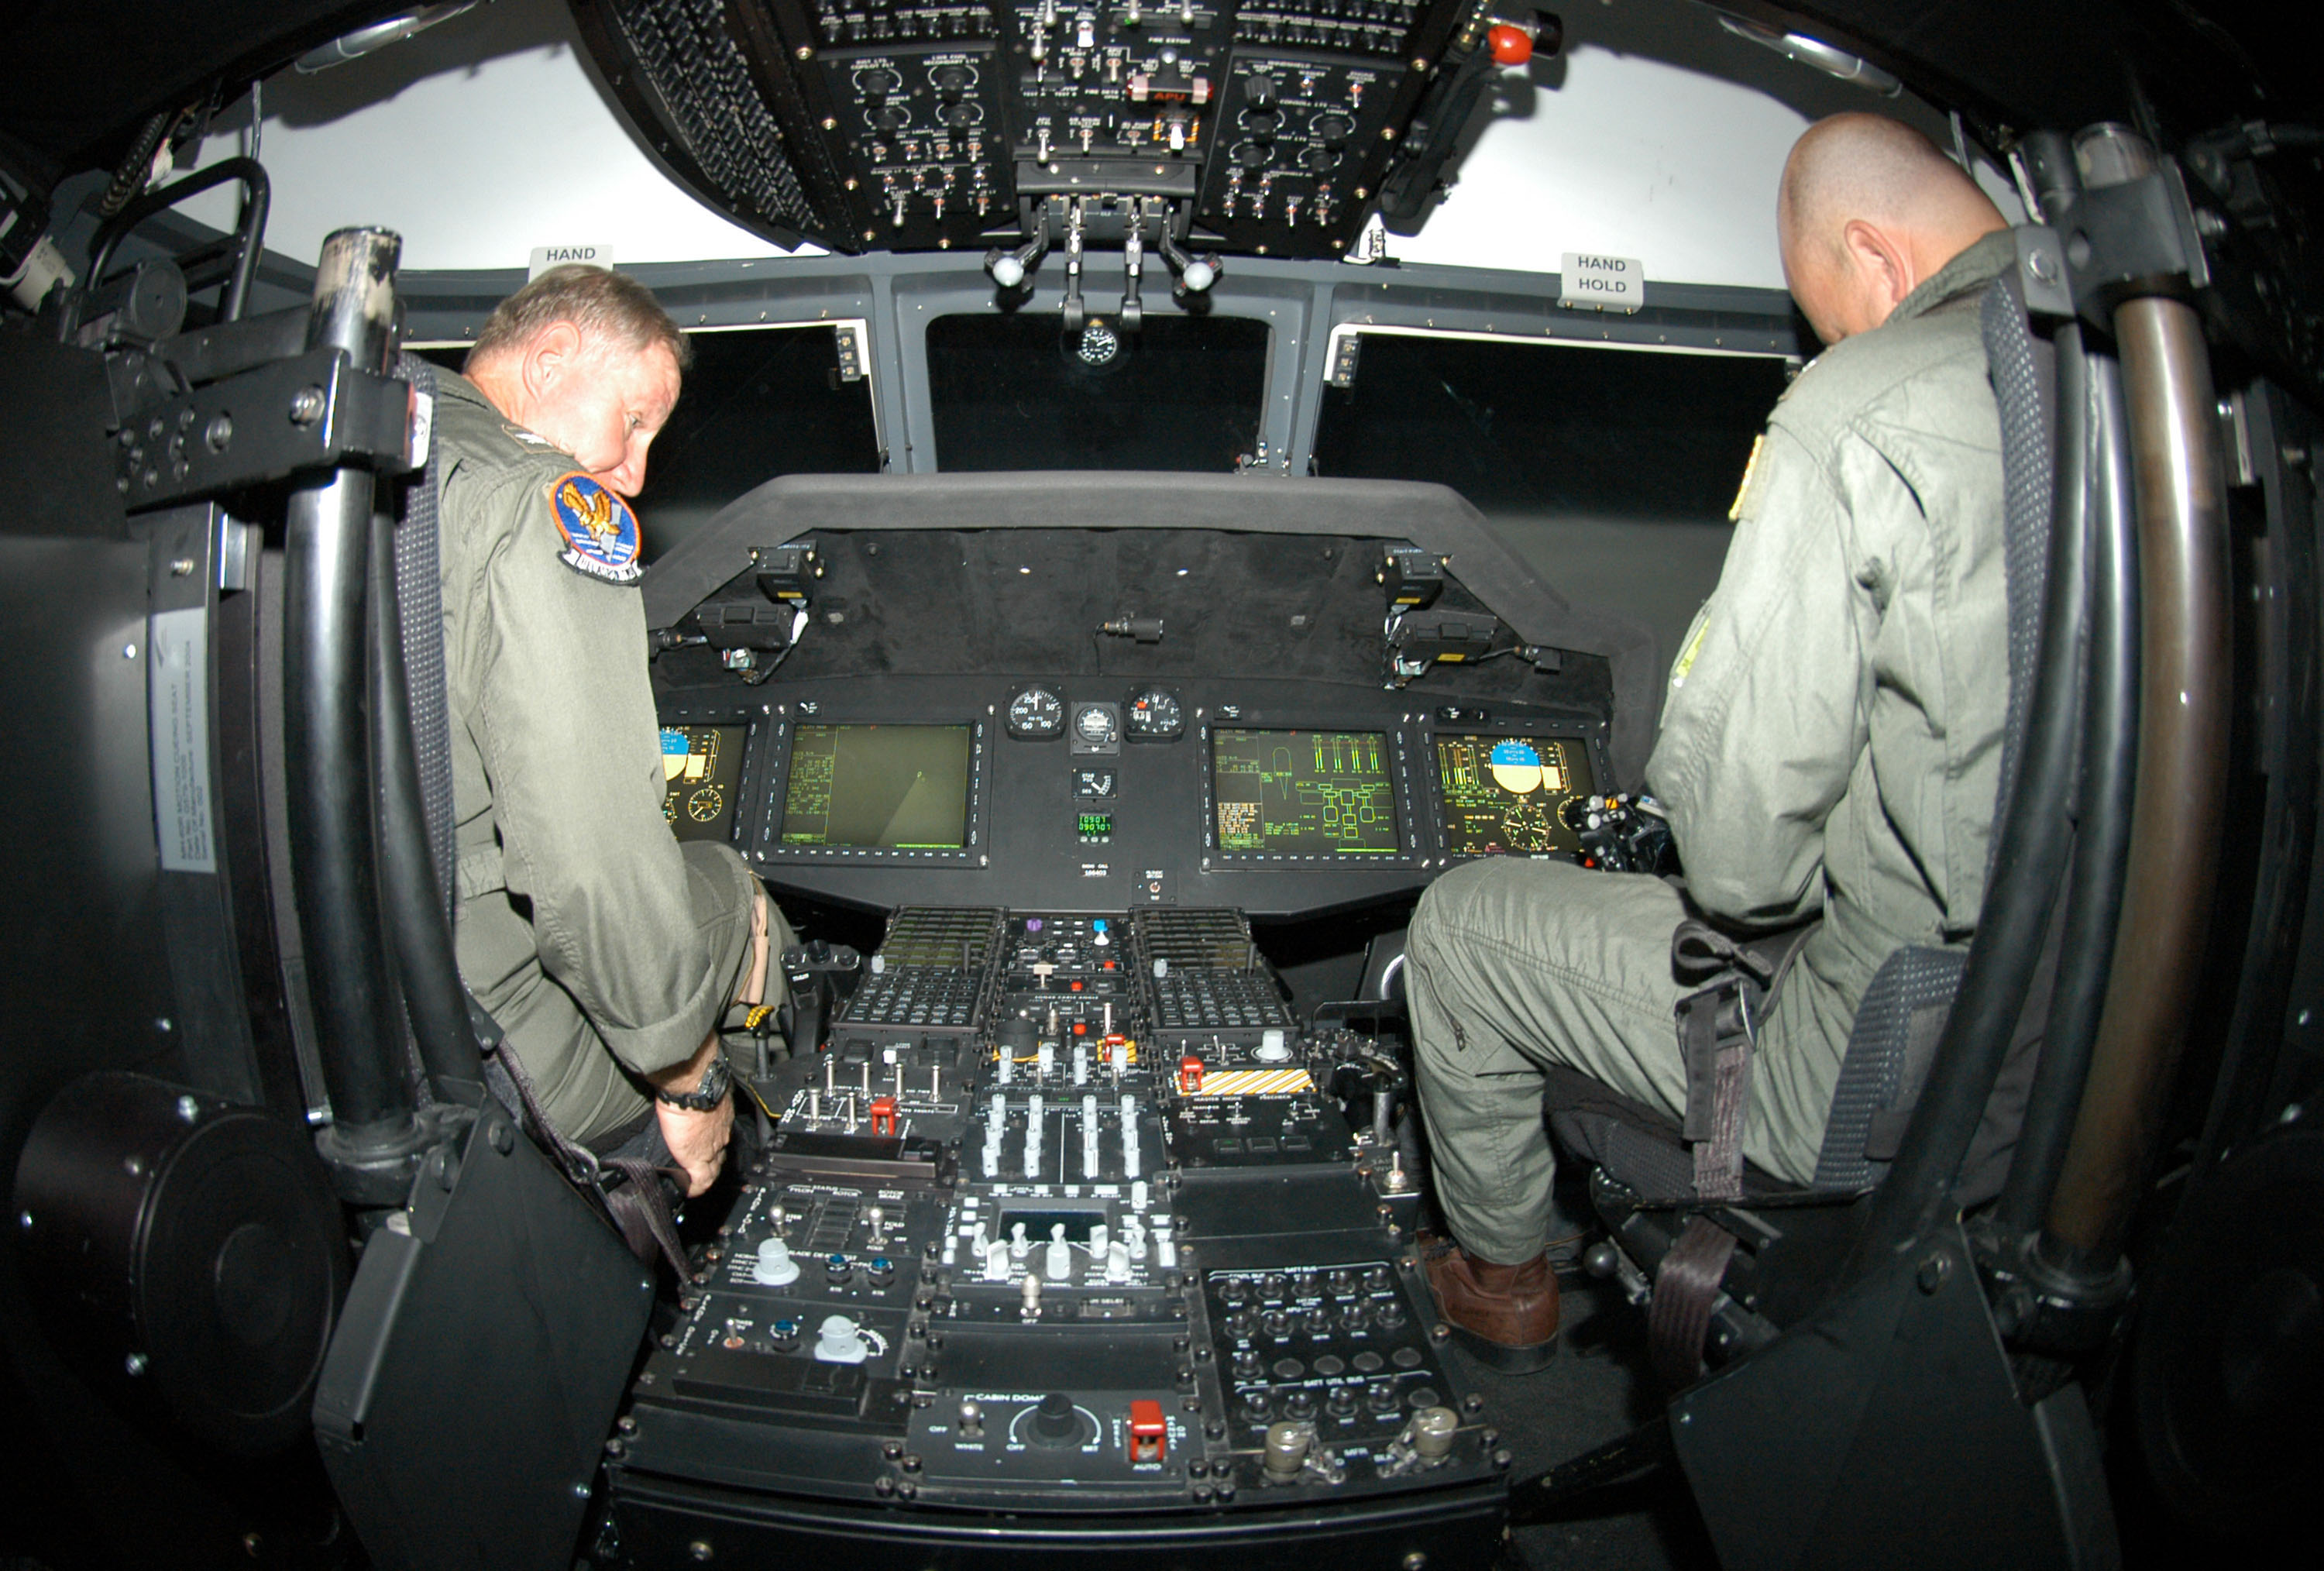 mh 60r seahawk helicopters with File Us Navy 070803 N 8878b 009 Capt  Matt Pringle  Left  And Capt  Tom Criger Prepare For The First Flight In The New Mh 60r  Romeo  Tactical Operation Flight Trainer  Toft on Sunshine Coast Defence Industry In The Spotlight furthermore Mh 60r au cae2 further Sik s 70 Sea additionally Sa royal saudi navy additionally Wings Over Illawarra 2017 Ran Mh 60r Romeo Seahawk.